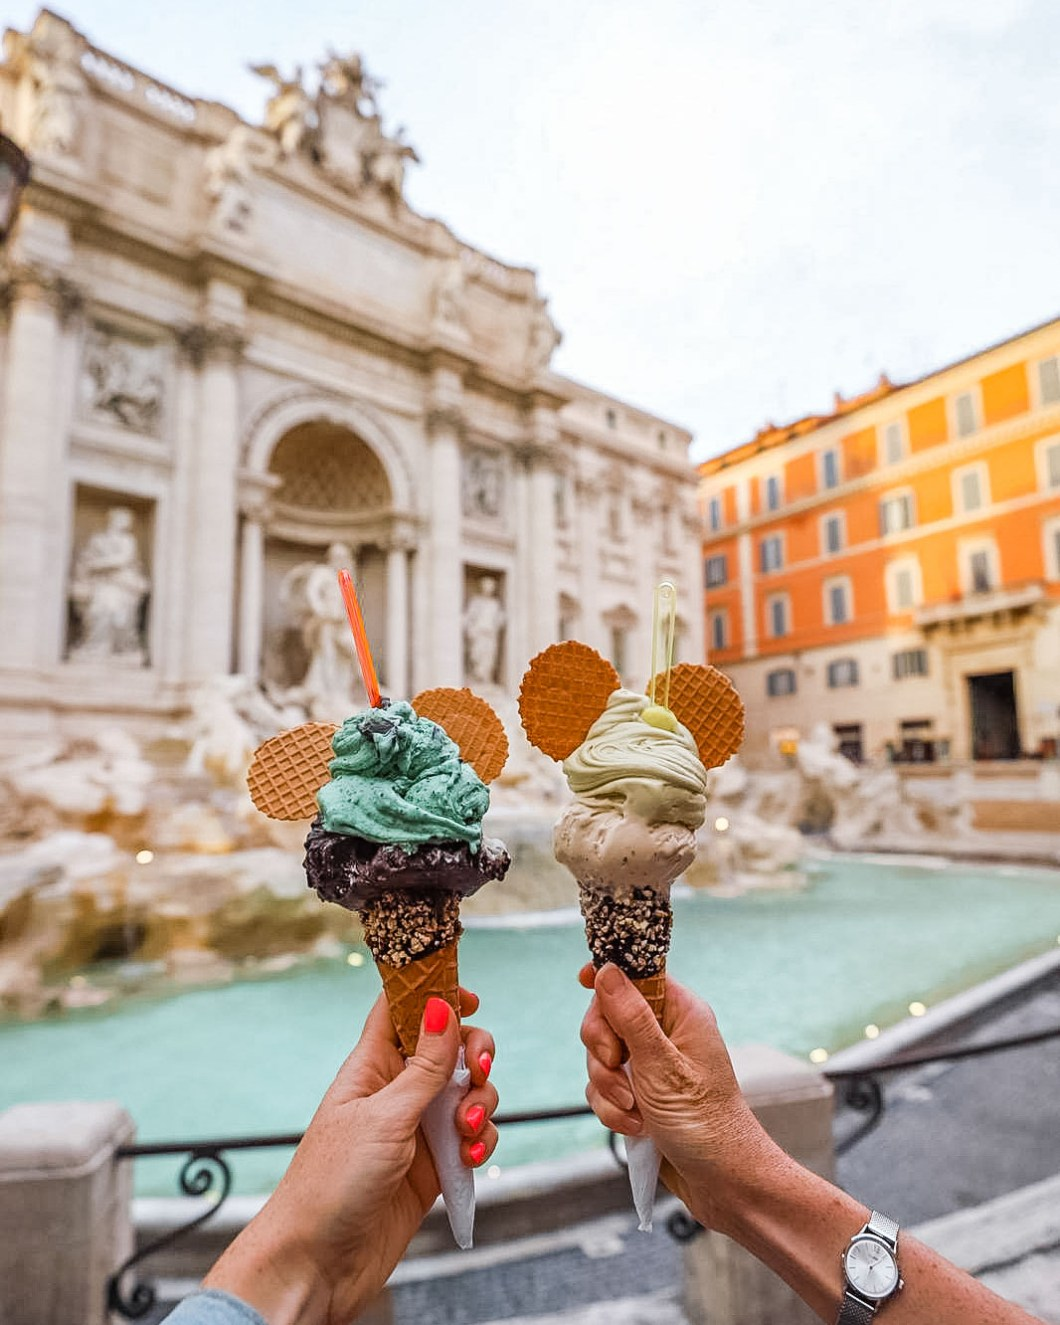 Eating a gelato at the Trevi Fountain in Rome